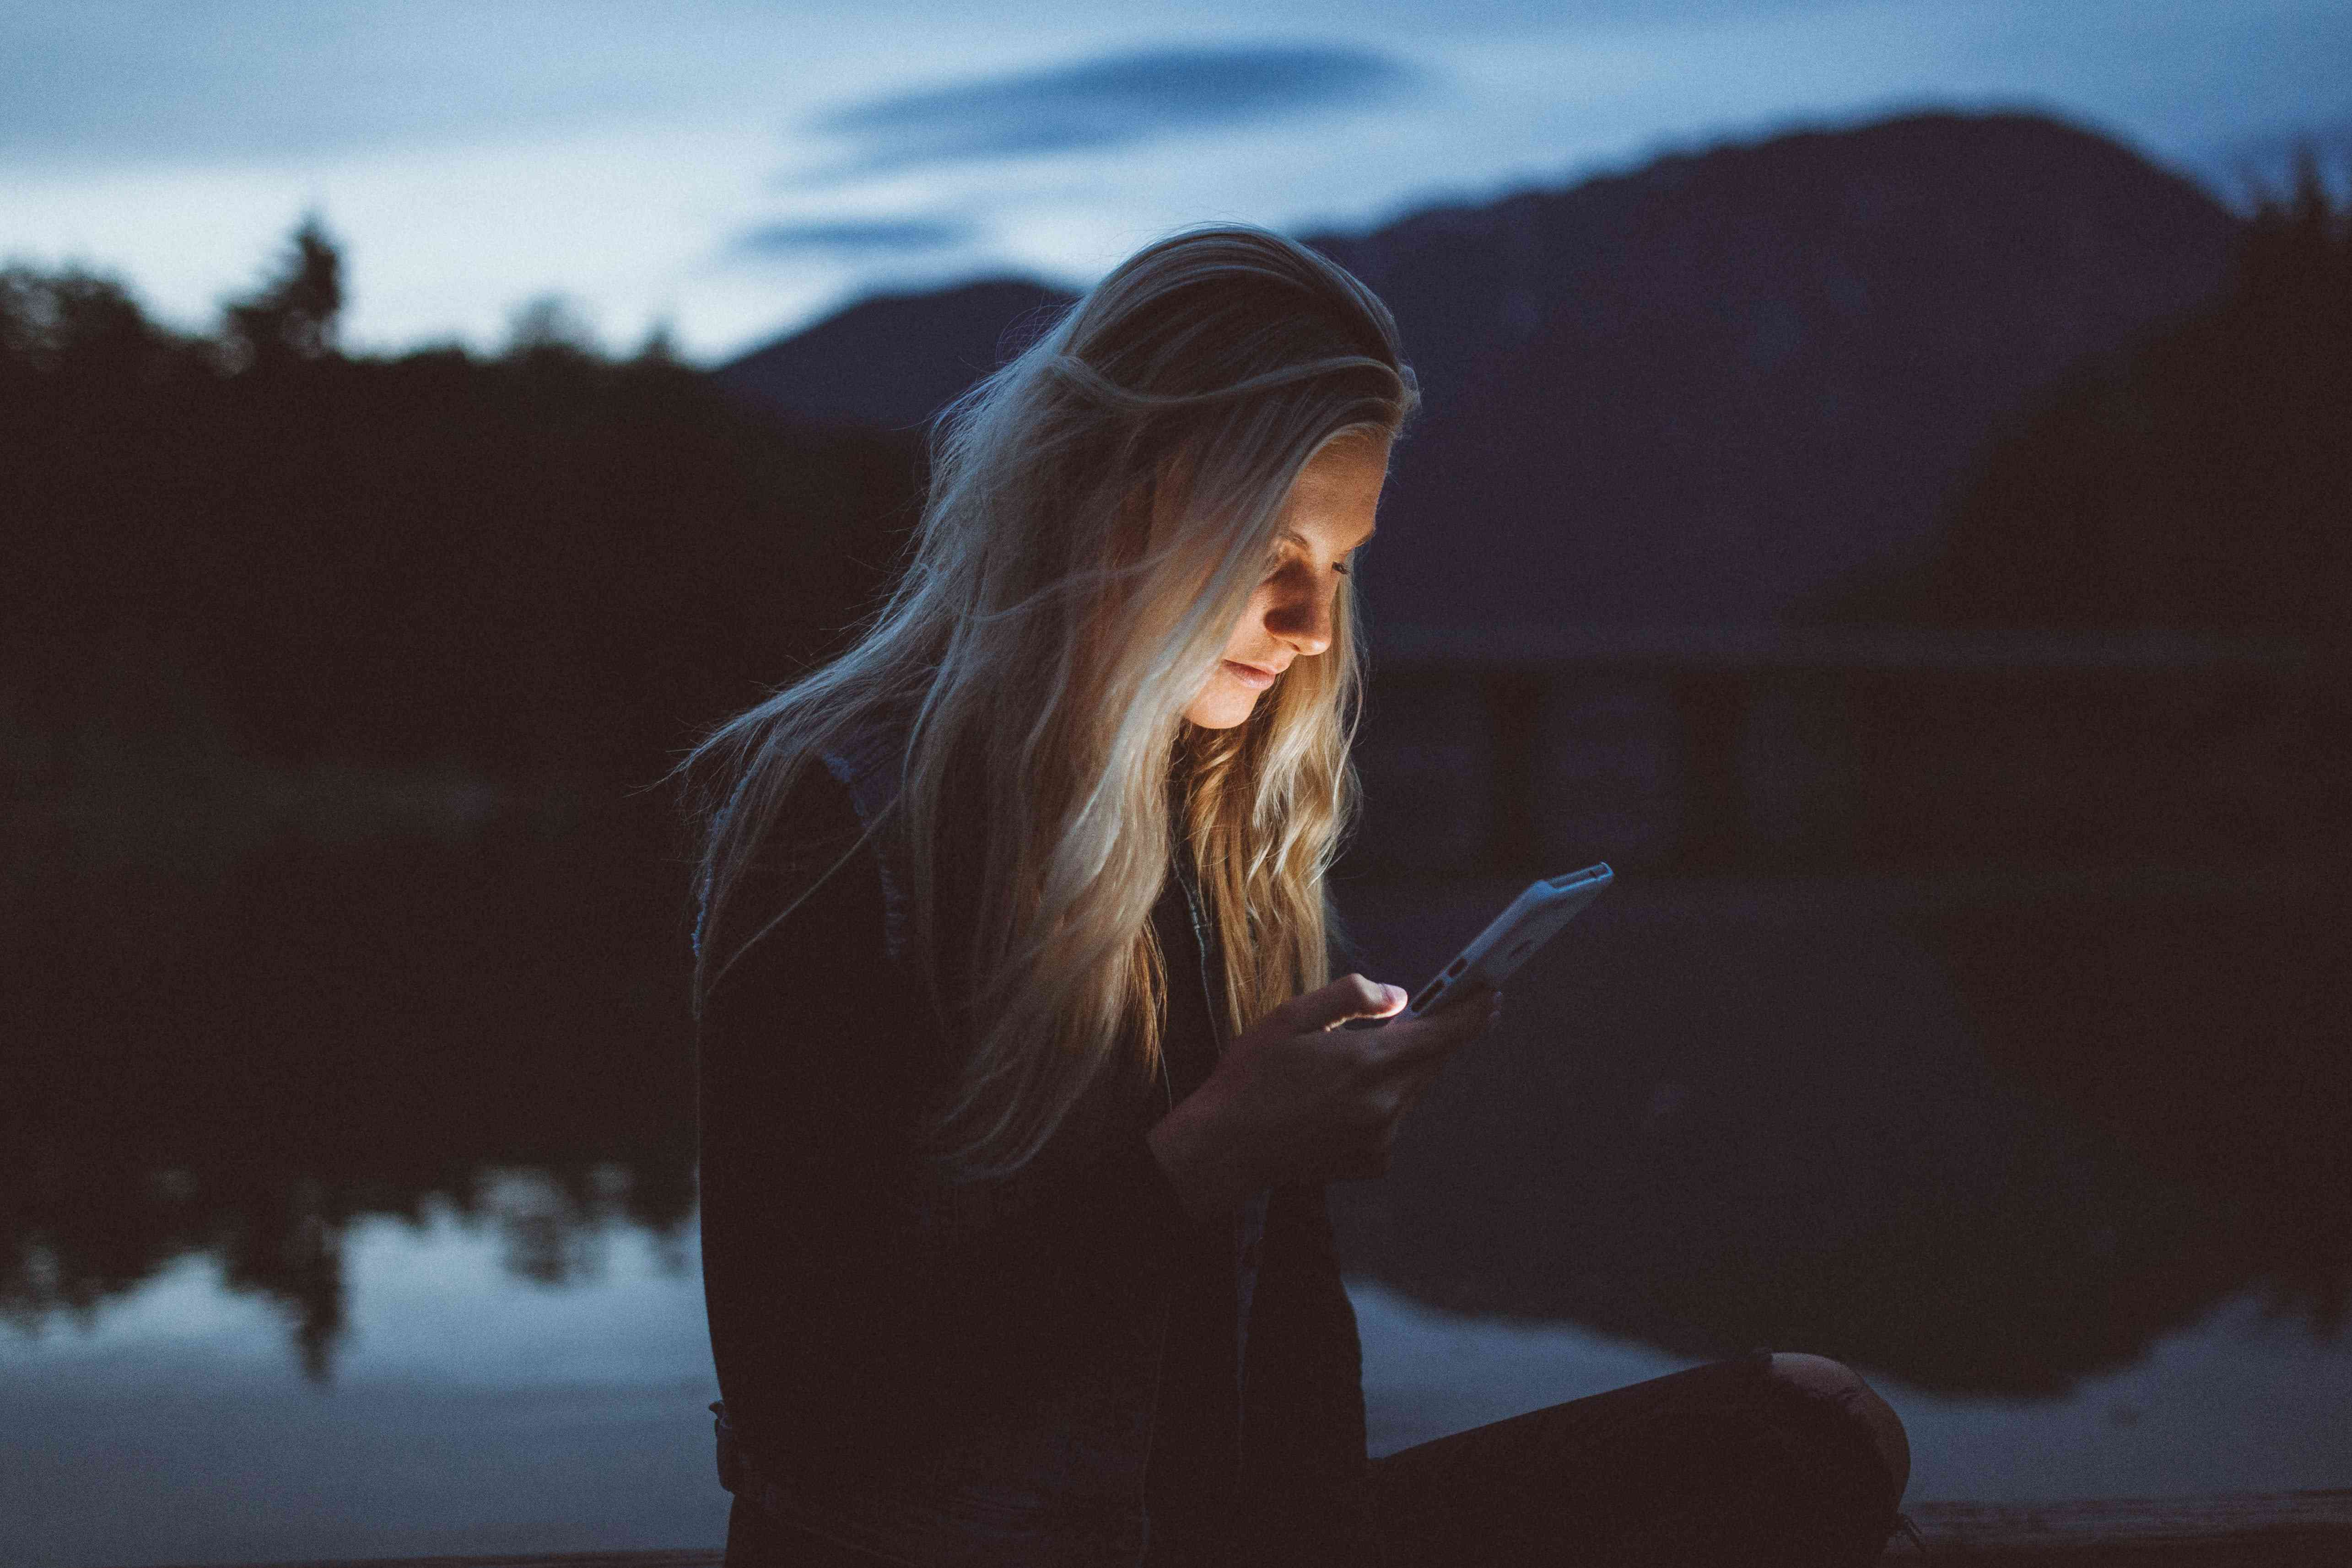 Someone messaging on a smartphone at dusk outside.